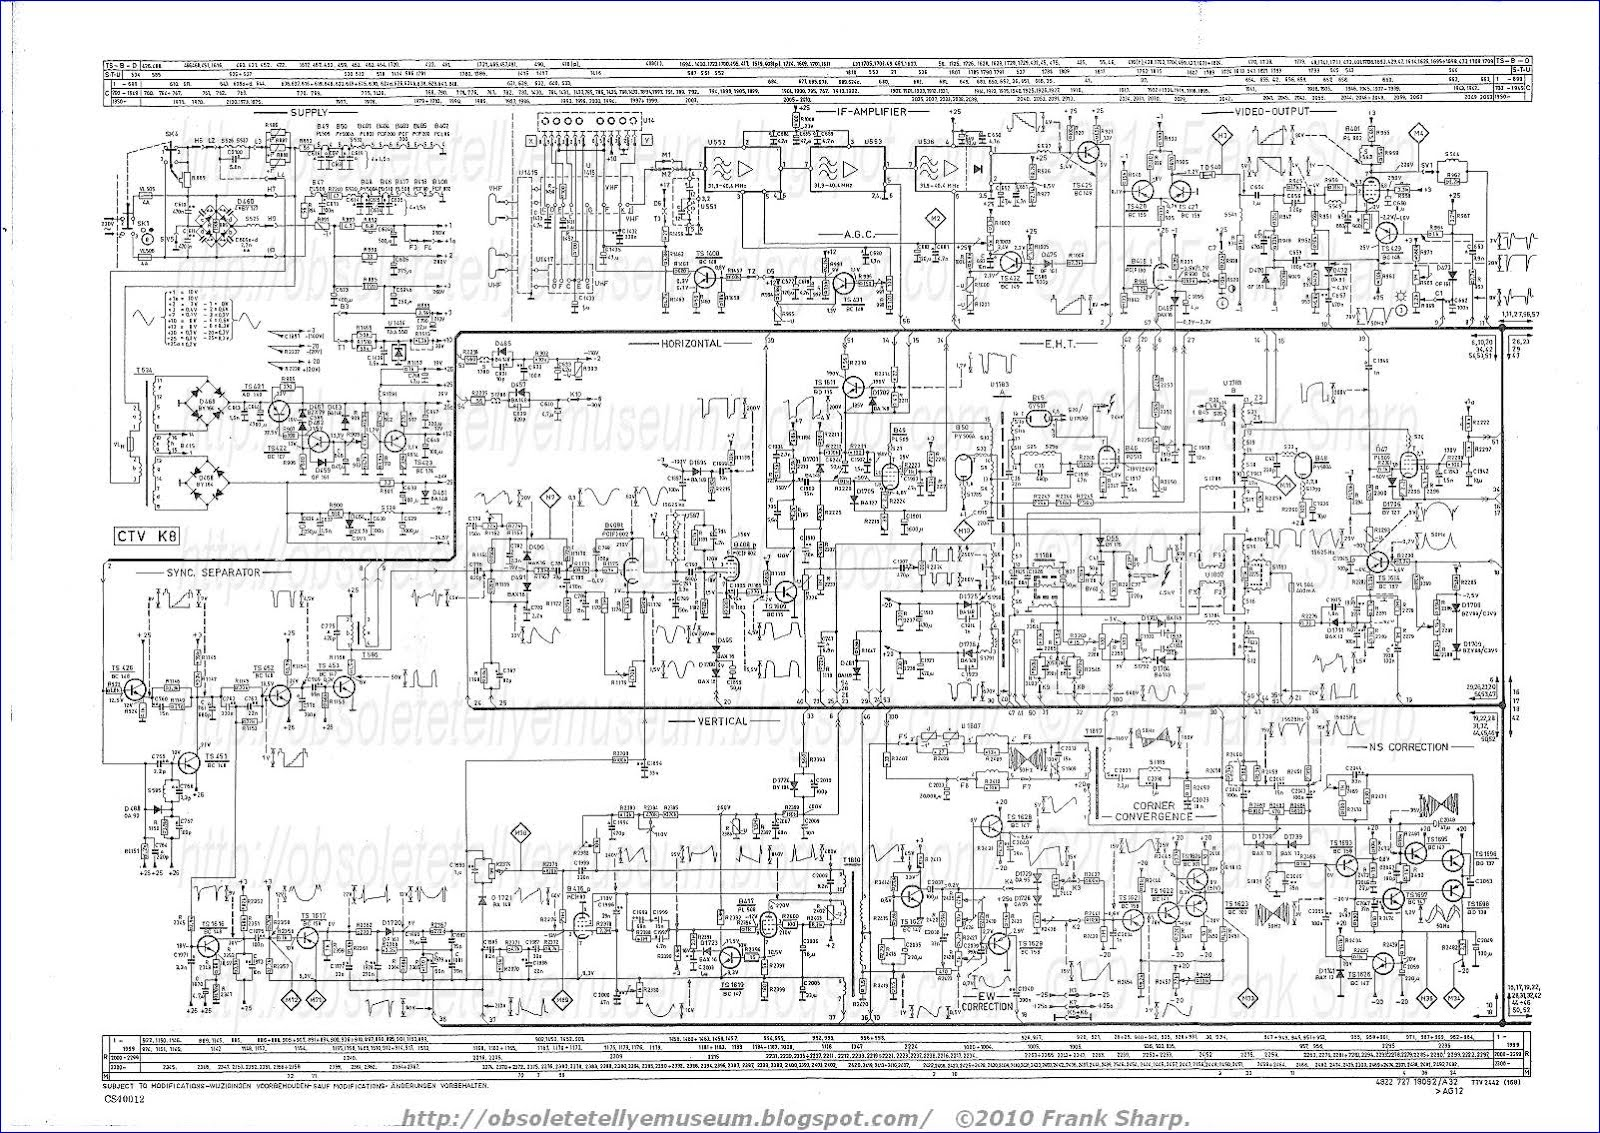 Free Schematic Diagram Philips Diagrams Theremindiagram Obsolete Technology Tellye X26k171 Royal Color 110 Giotto Electronic Circuit A Arrangement